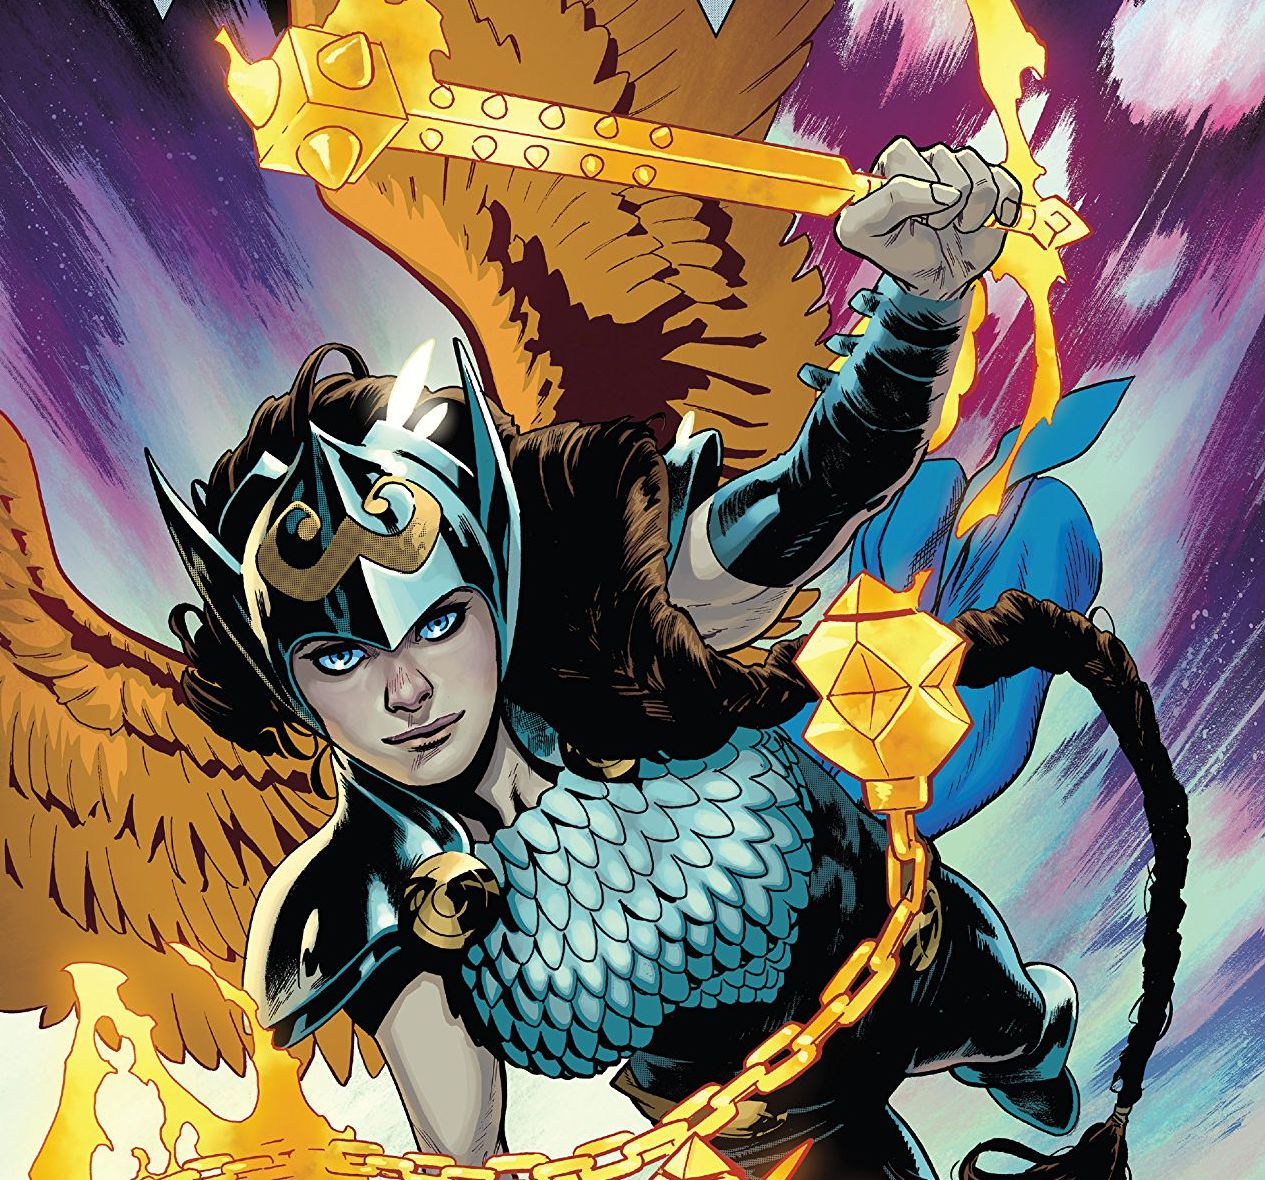 Valkyrie #1 review